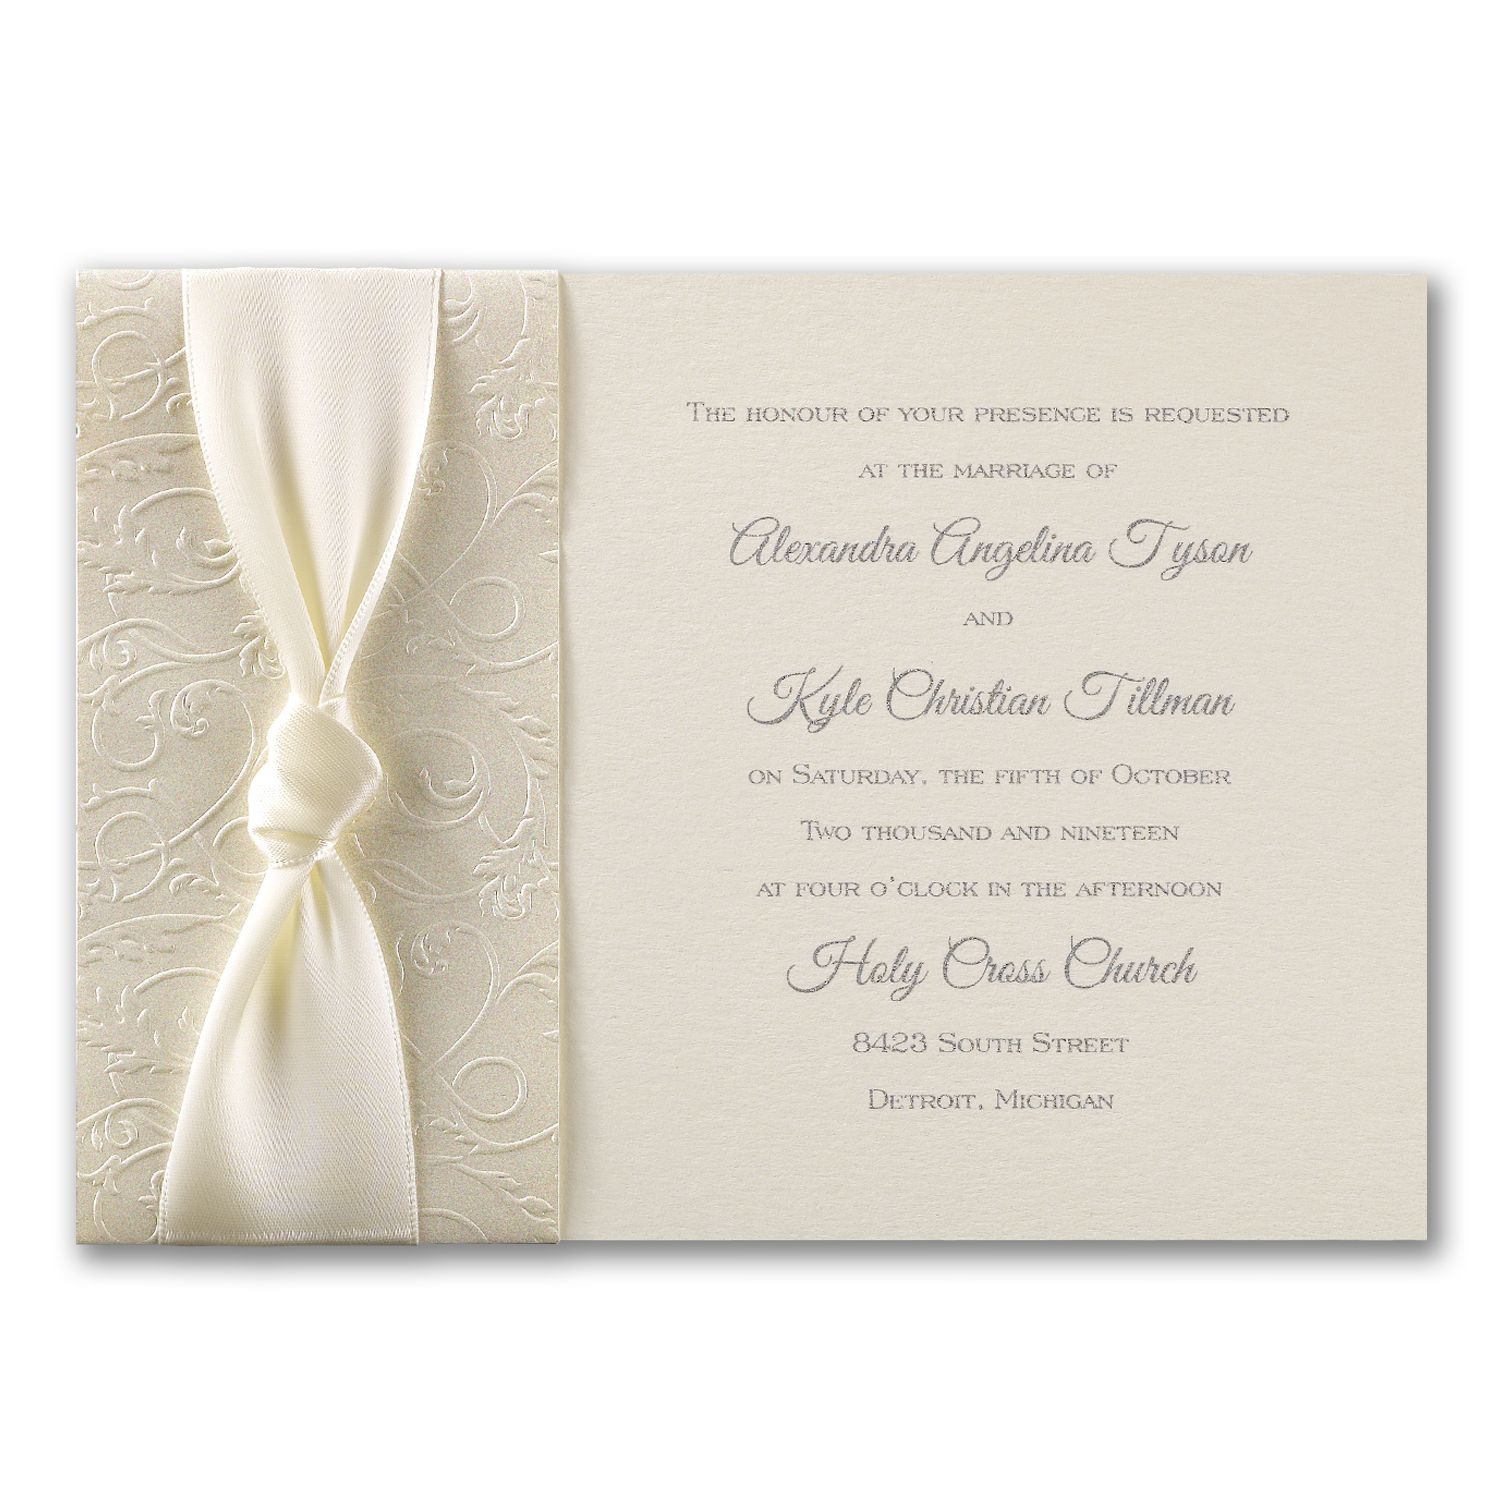 blank wedding invitations%0A A band of embossed ecru shimmer paper and a wide satin ribbon add rich  beauty to this wedding invitation